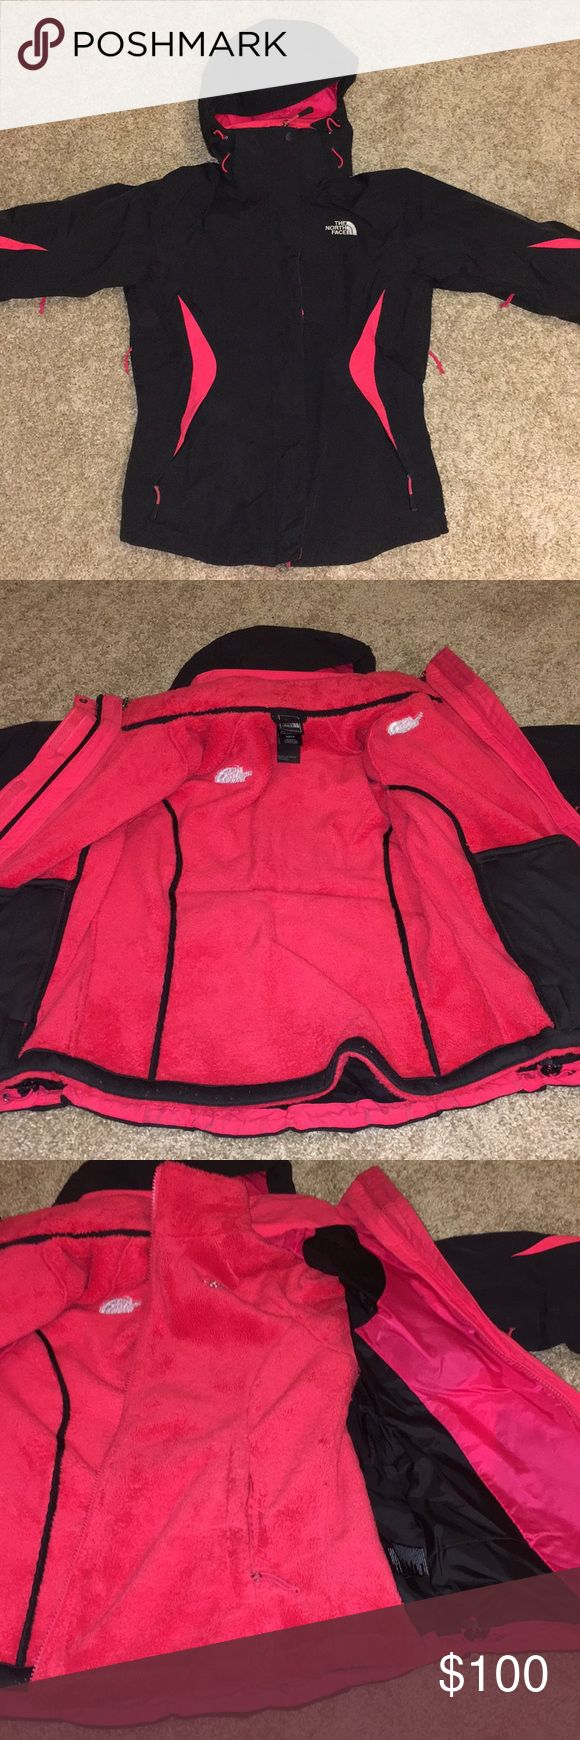 North Face Women's Winter Jacket 3 in 1 jacket triclimate jacket with a fuzzy jacket on the inside that can be taken out, outer shell is in good condition as well as the inside jacket. There are vents in the arms and the hood can be removed. Can be worn in rain or snow or just on a windy day. Keeps you very warm North Face Jackets & Coats